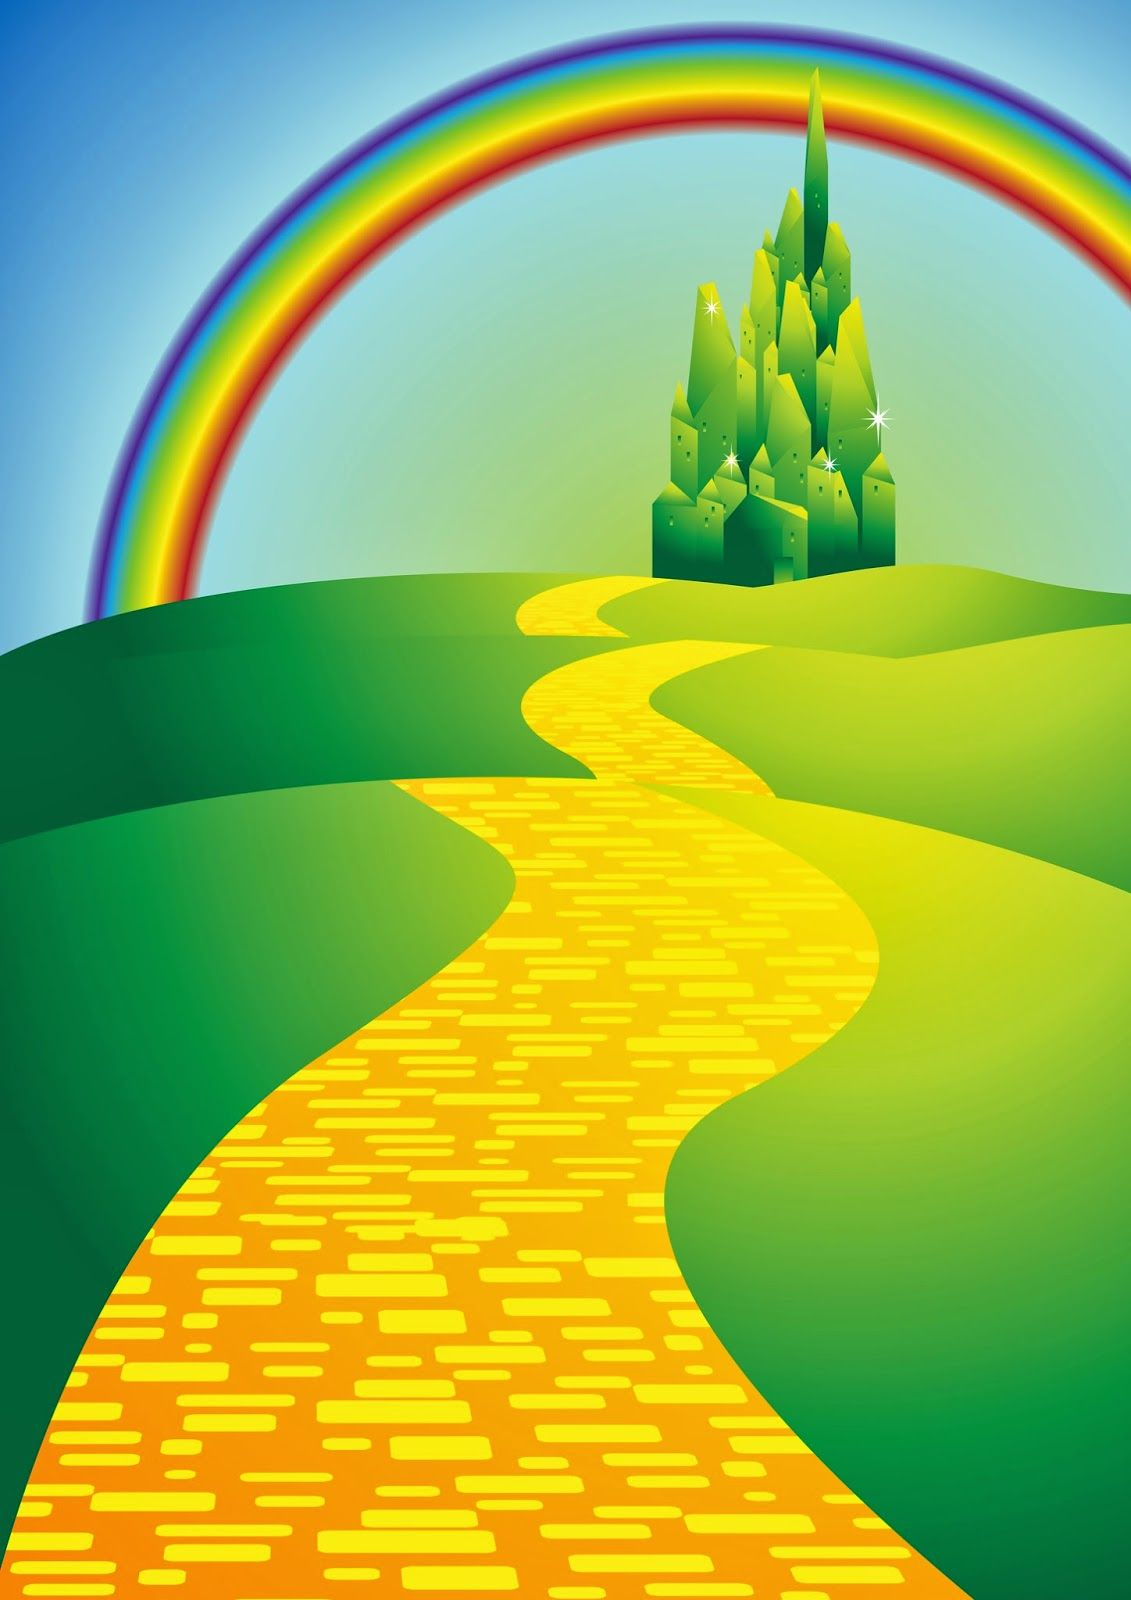 wizard of oz yellow brick road we re off to see the wizard wizard rh pinterest com yellow brick road clipart free yellow brick road clipart black and white